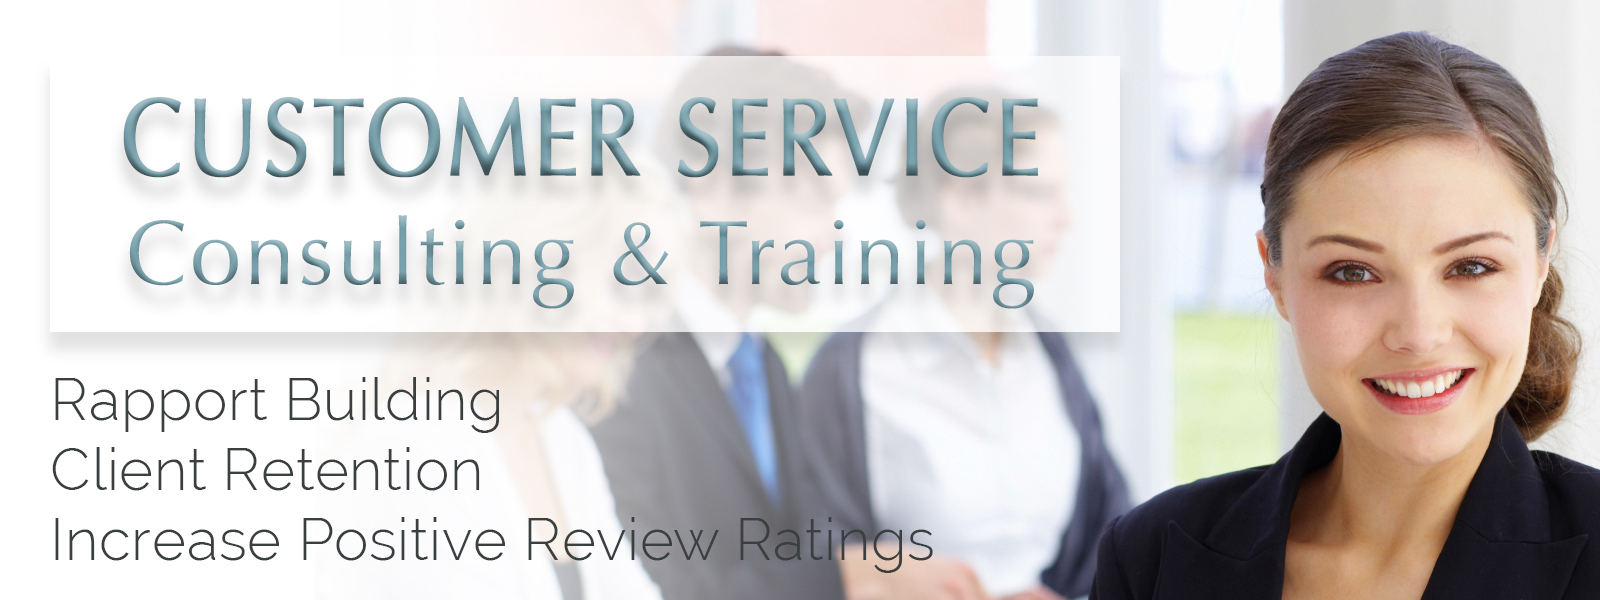 Camelot Enterprises, LLC - est. 1994 | Customer Service - Professional Training for your customer service staff and consultation services.